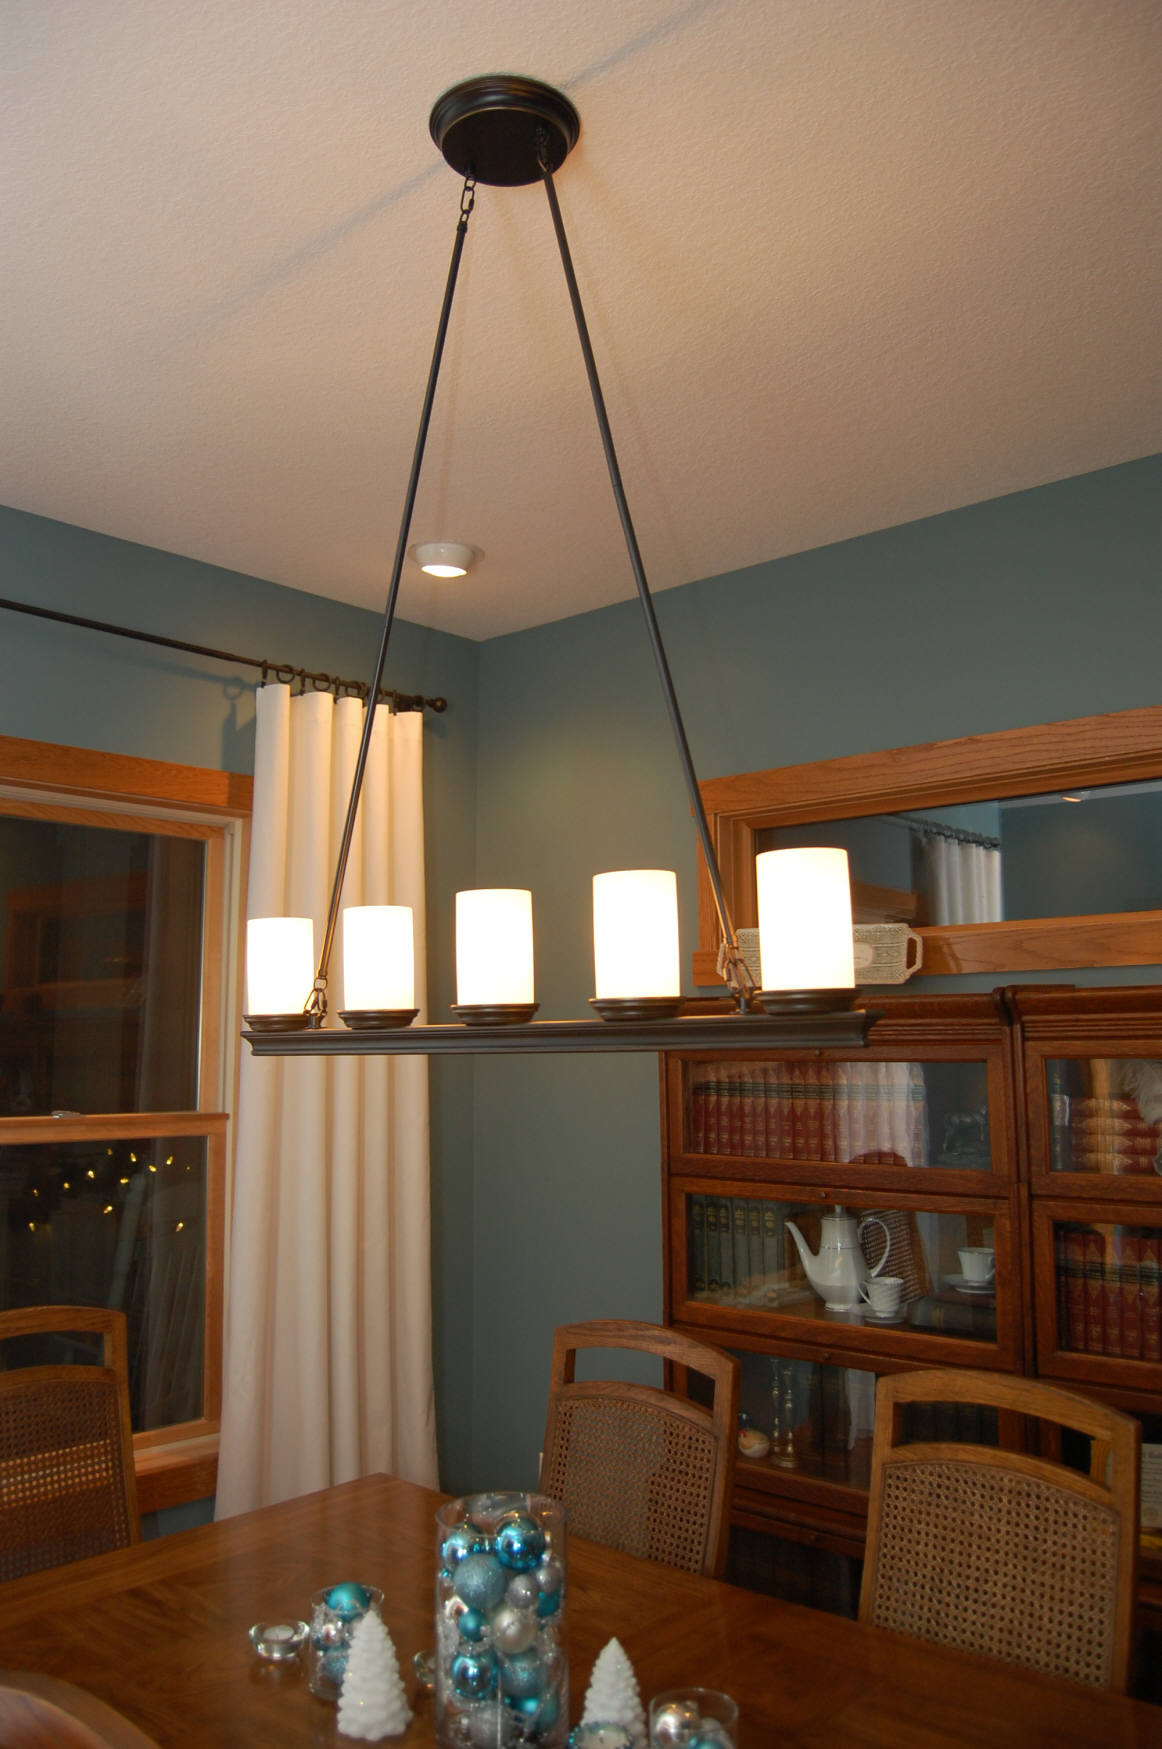 Dining Ceiling Light Fixture Dining Room Ceiling Light Fixtures Large And Beautiful